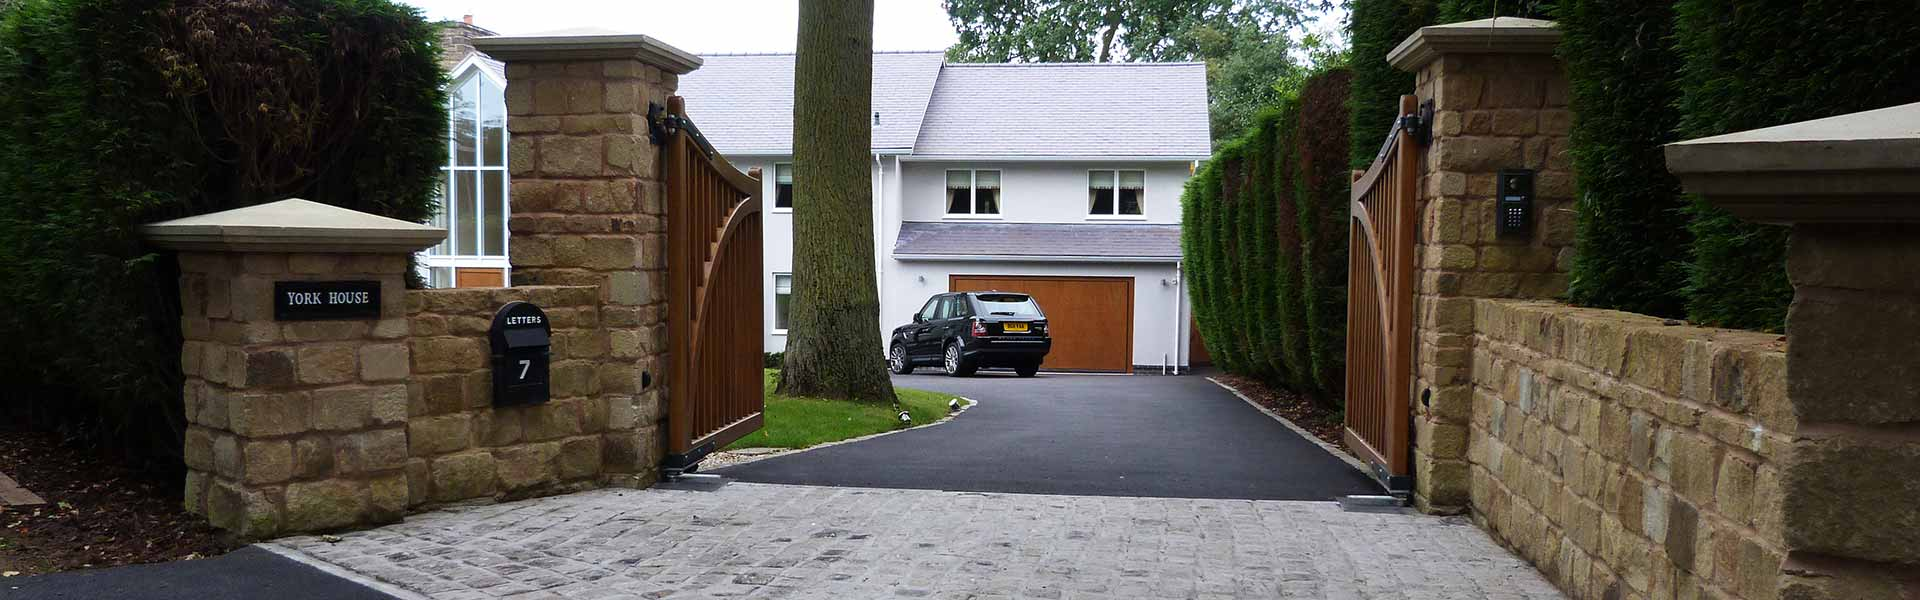 Mainstream Driveways Solihull, West Midlands